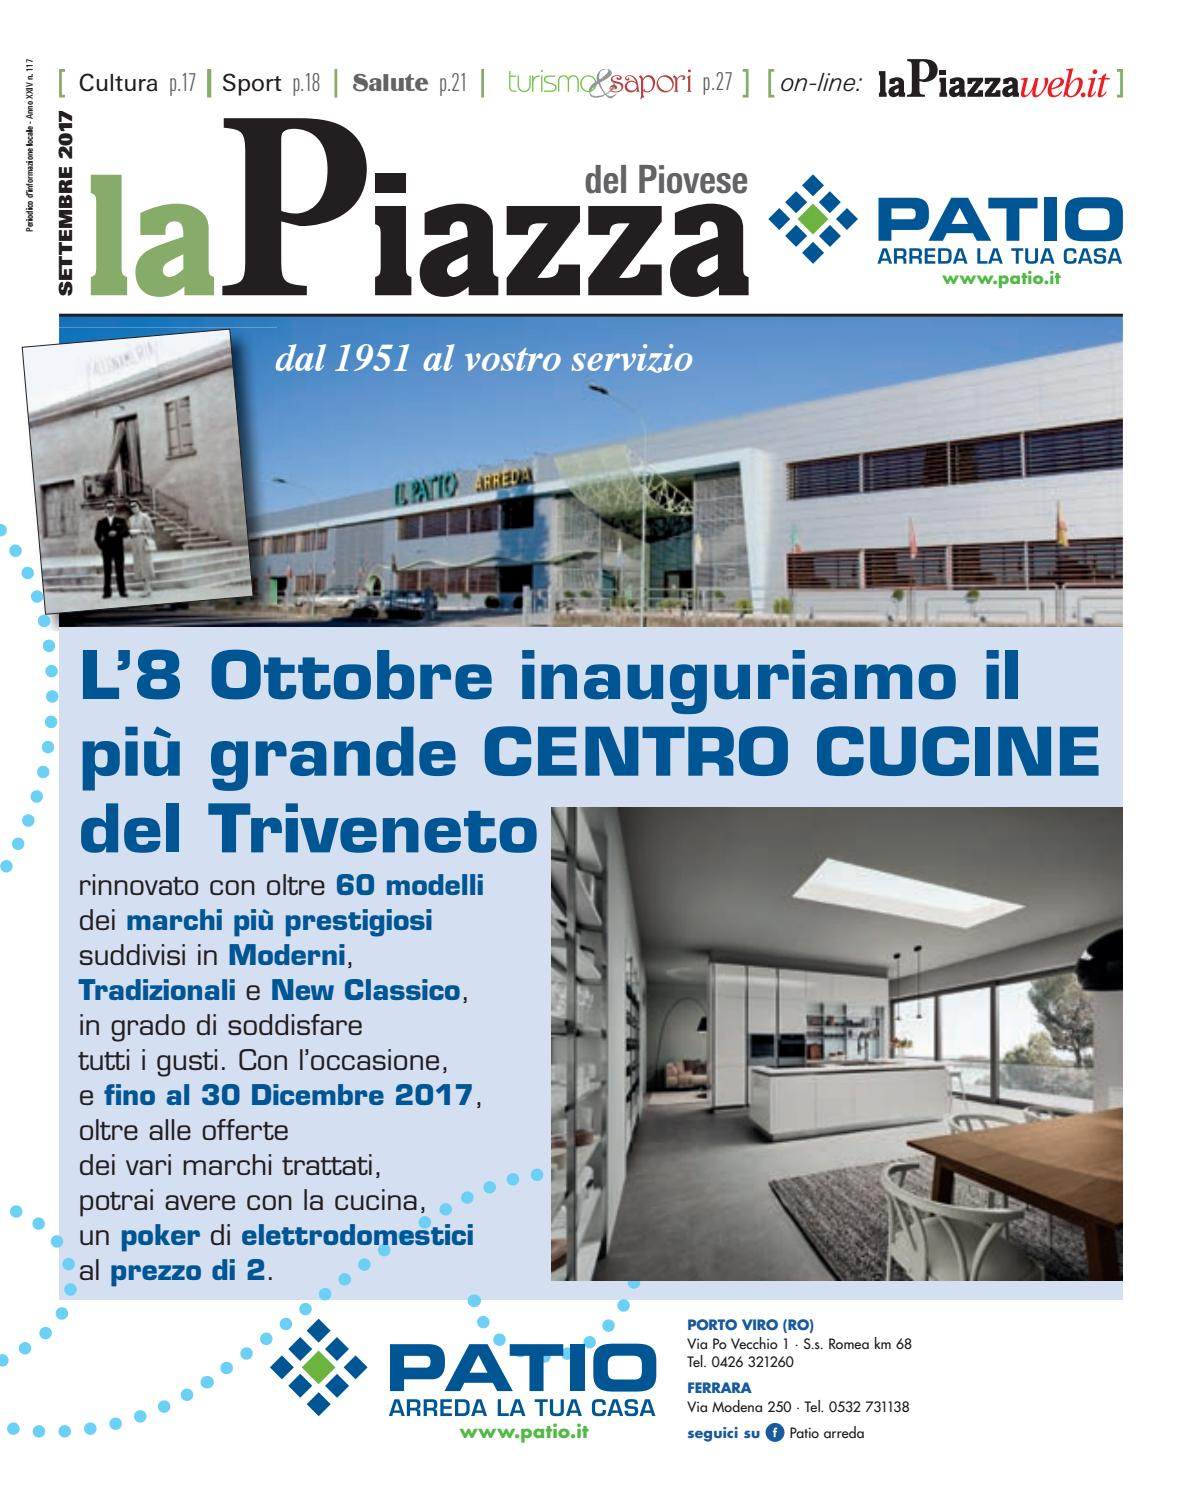 Piovese sett2017 n117 by lapiazza give emotions - issuu